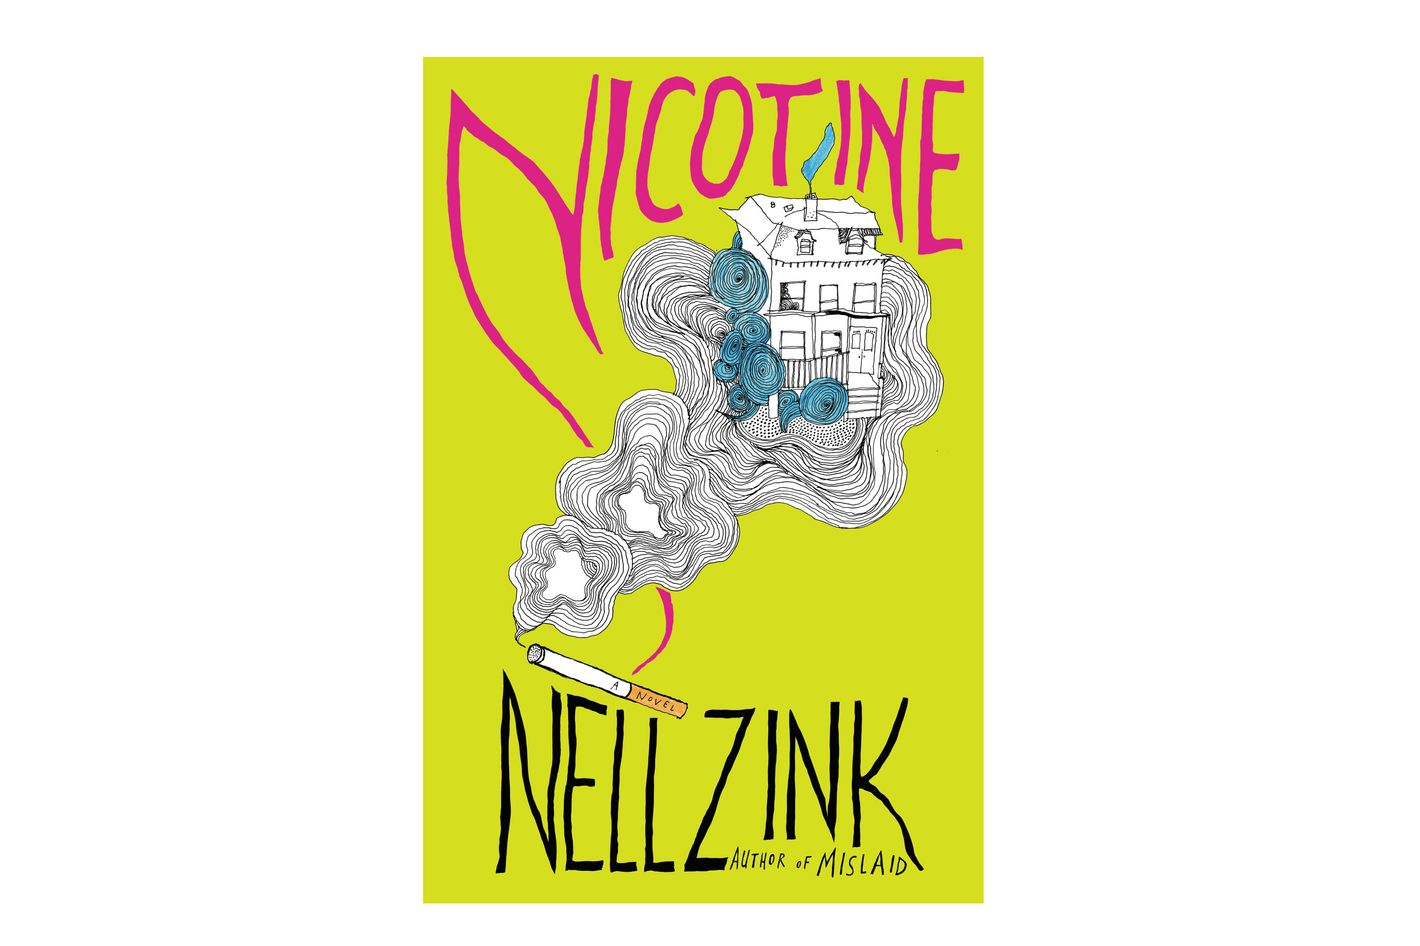 Nicotine, by Nell Zink